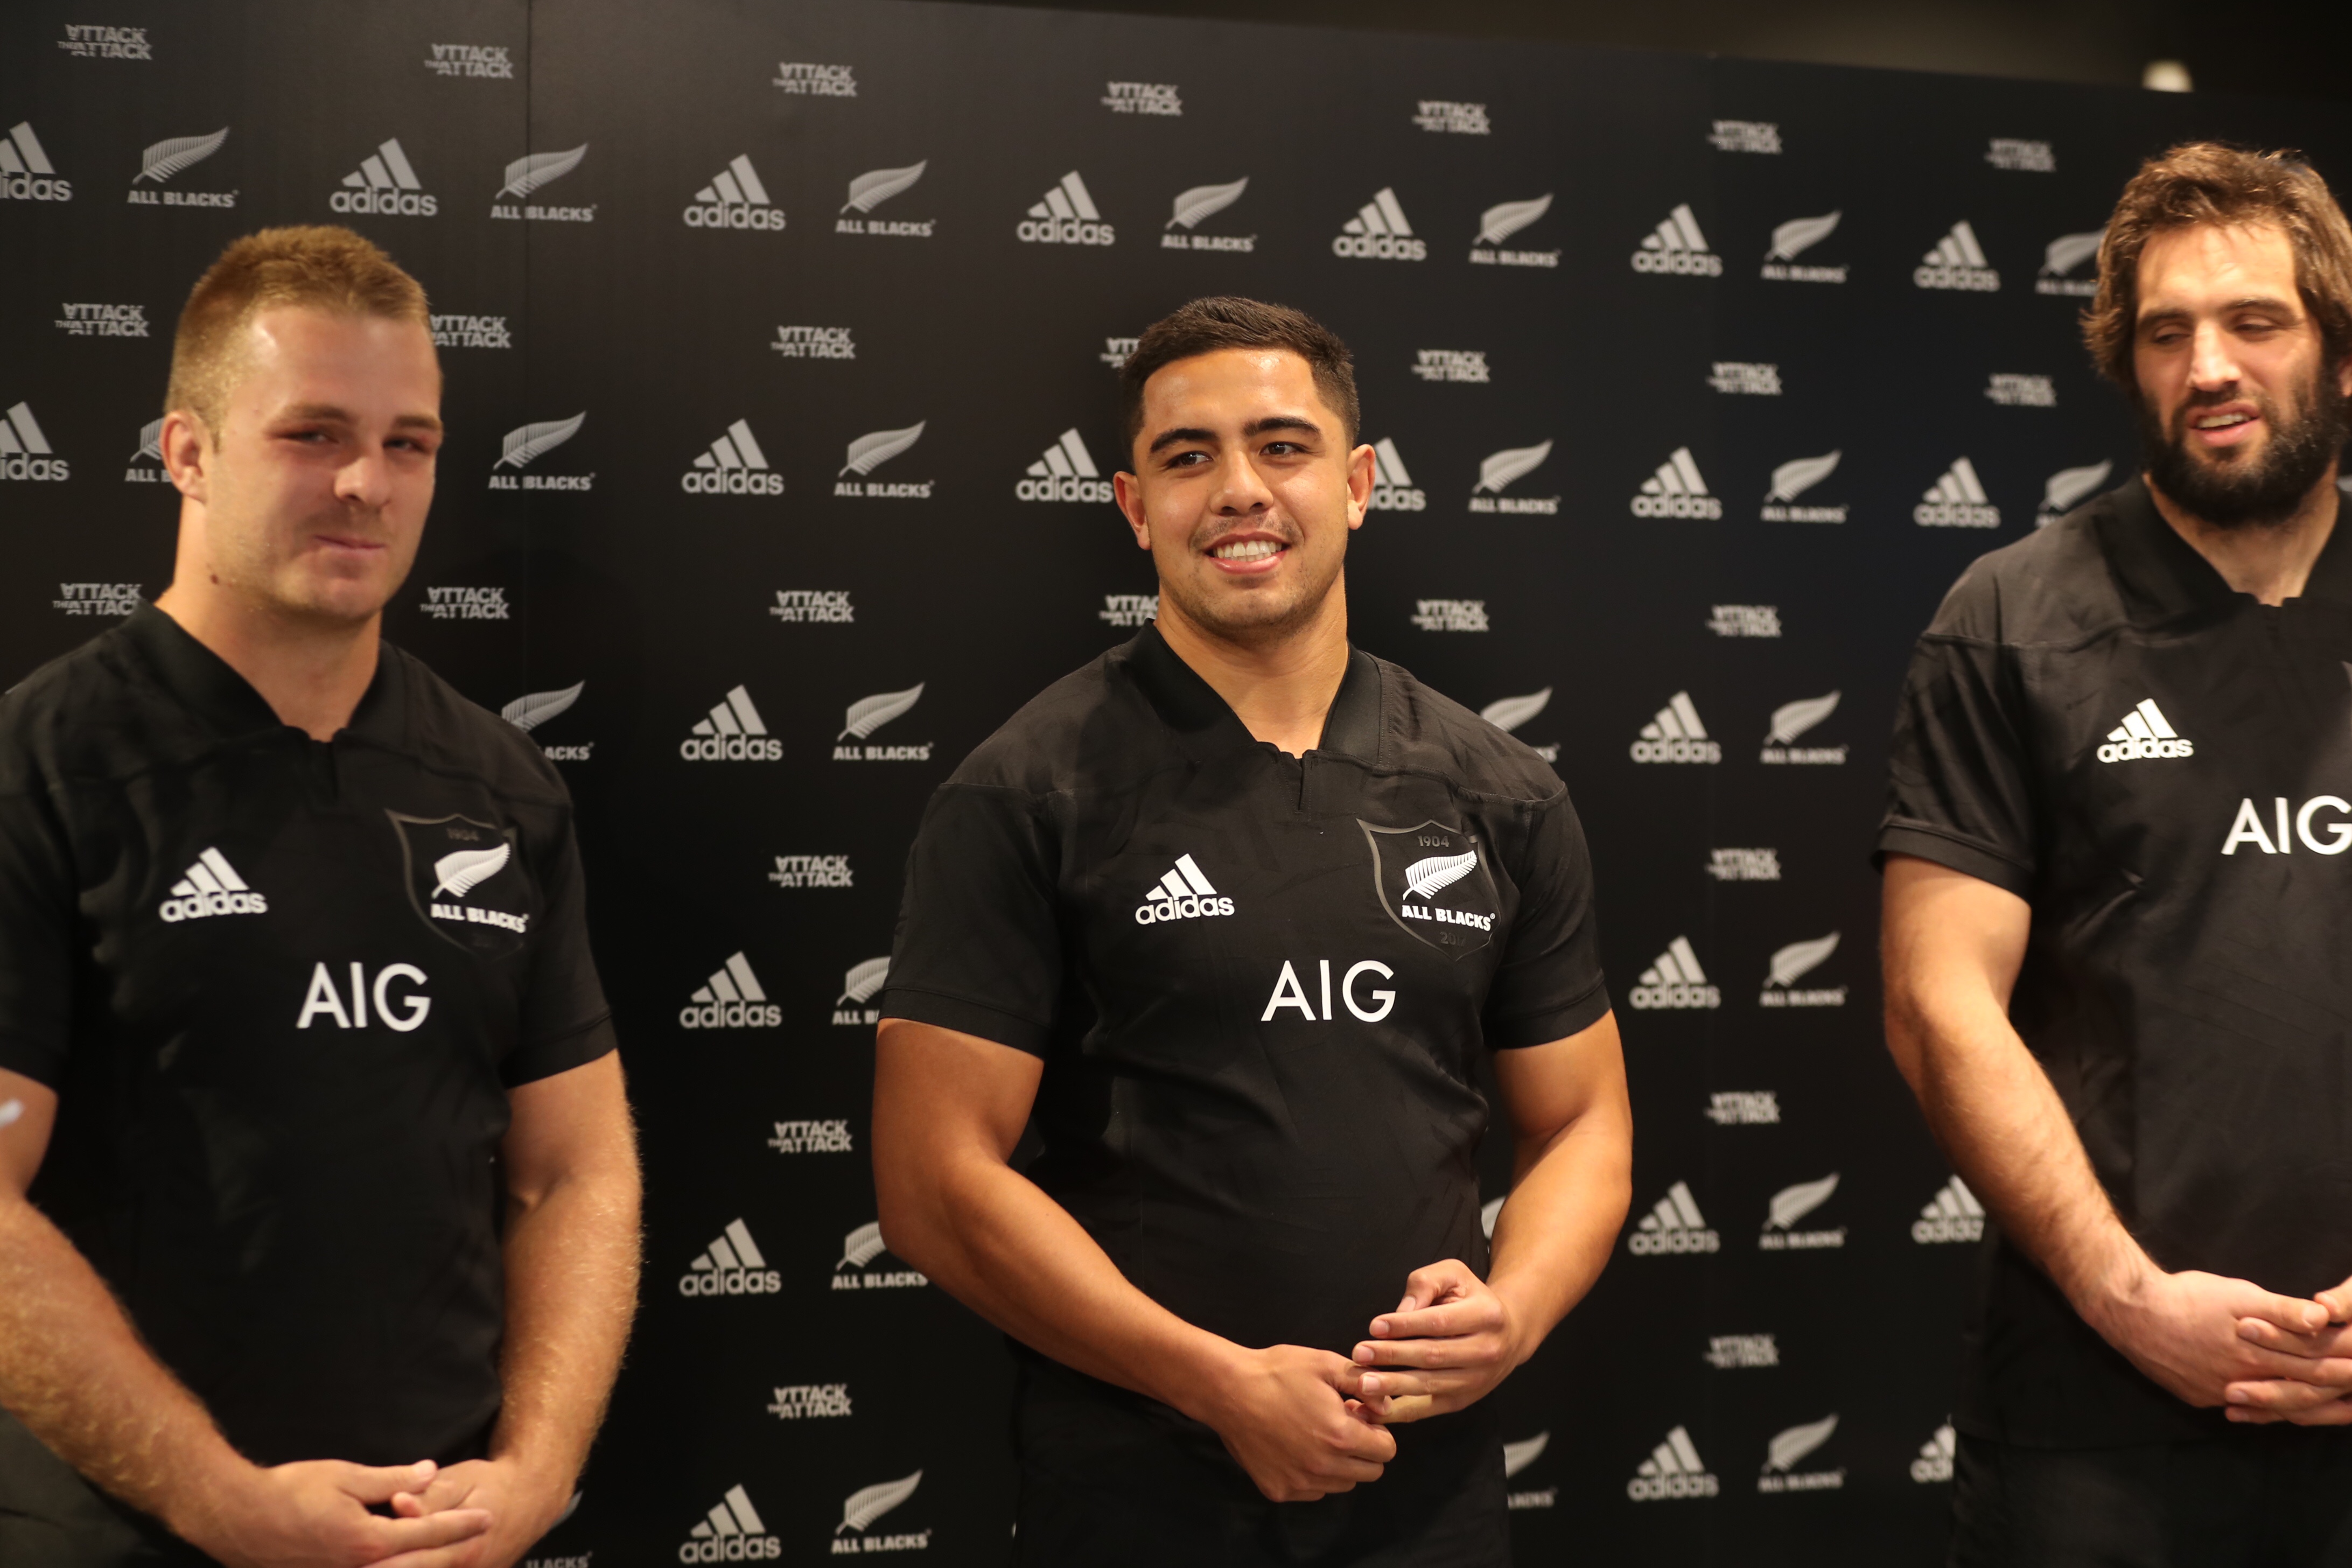 ed26f2d8131 Lions Tour 2017: New jersey and new excitement for All Blacks - NZ ...